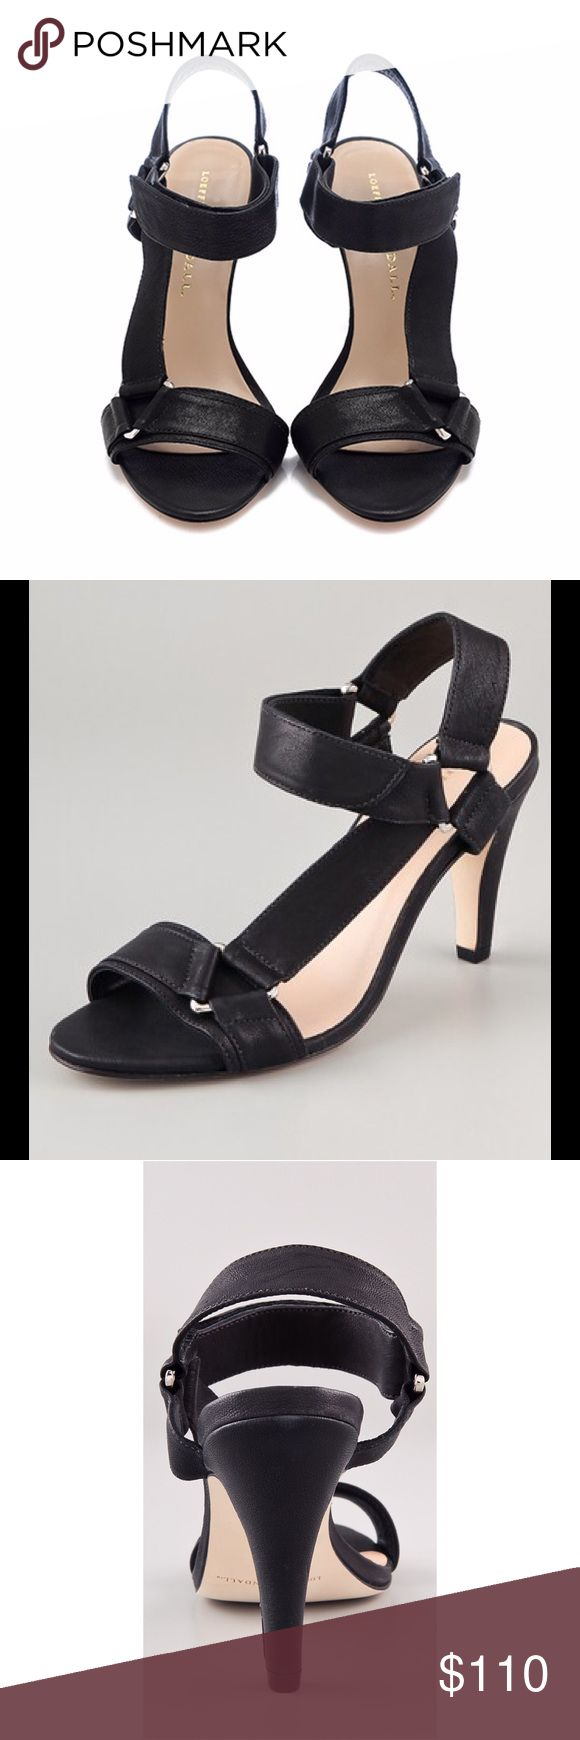 """Loeffler Randall Reba Mid Heel Sandals Loeffler Randall Reba Mid Heel Sandals.  Leather sandals featuring triangle hardware and a Velcro ankle strap.  Covered heel,  leather sole.  3.5"""" heel.  Made in Brazil.  Great condition! Loeffler Randall Shoes Sandals"""